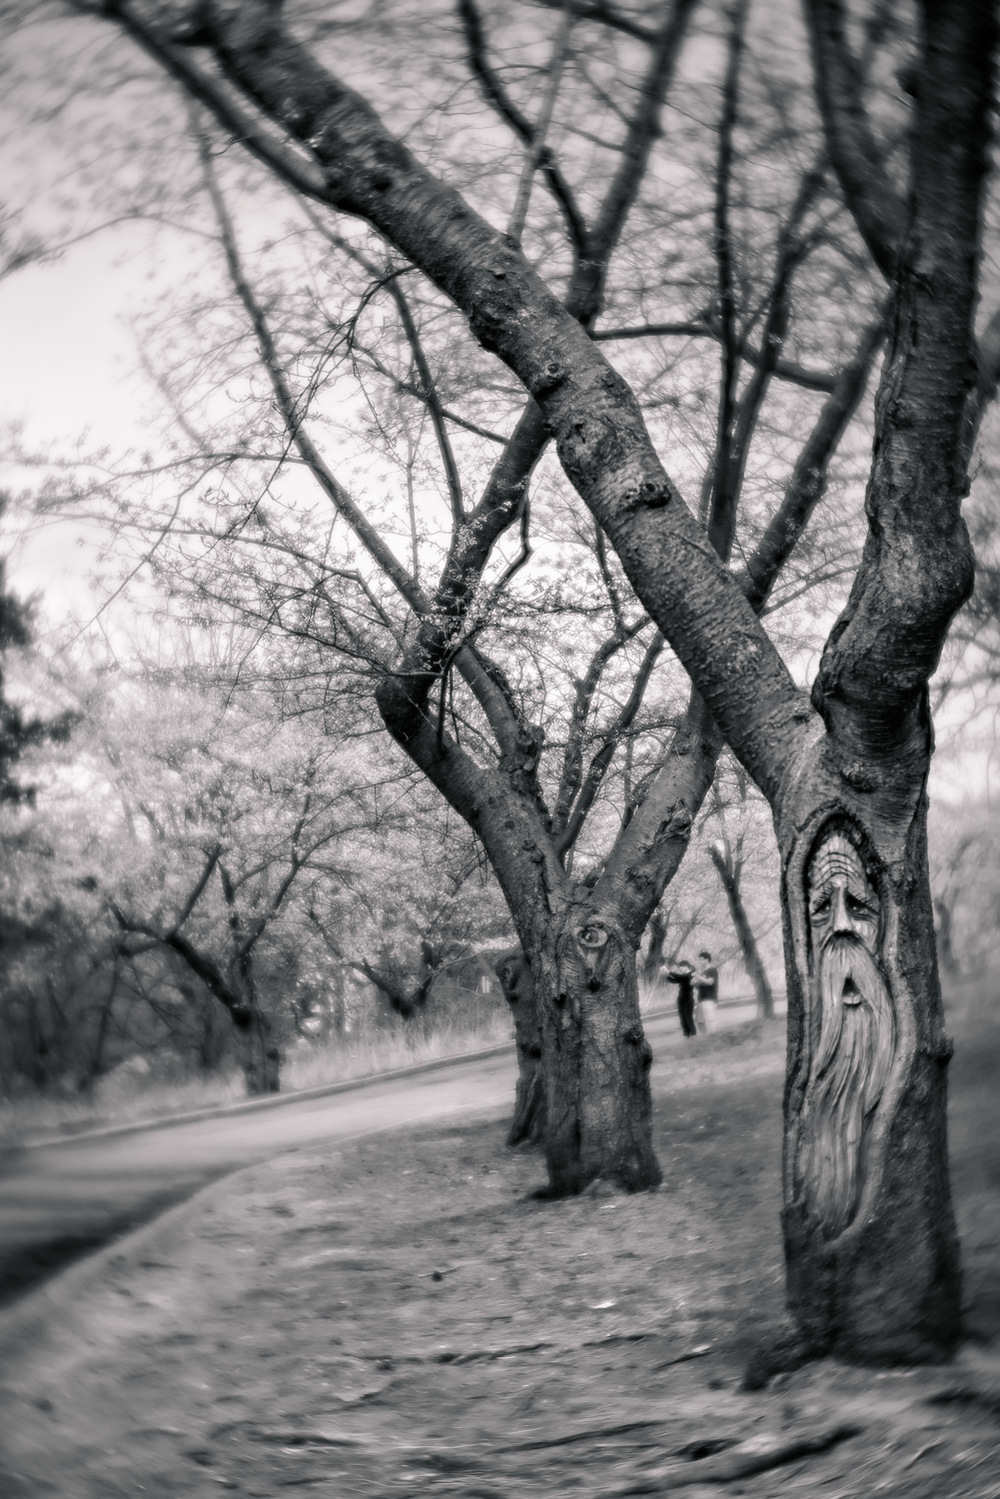 A carving of a face in the trunk of a cherry tree in High Park, Toronto.